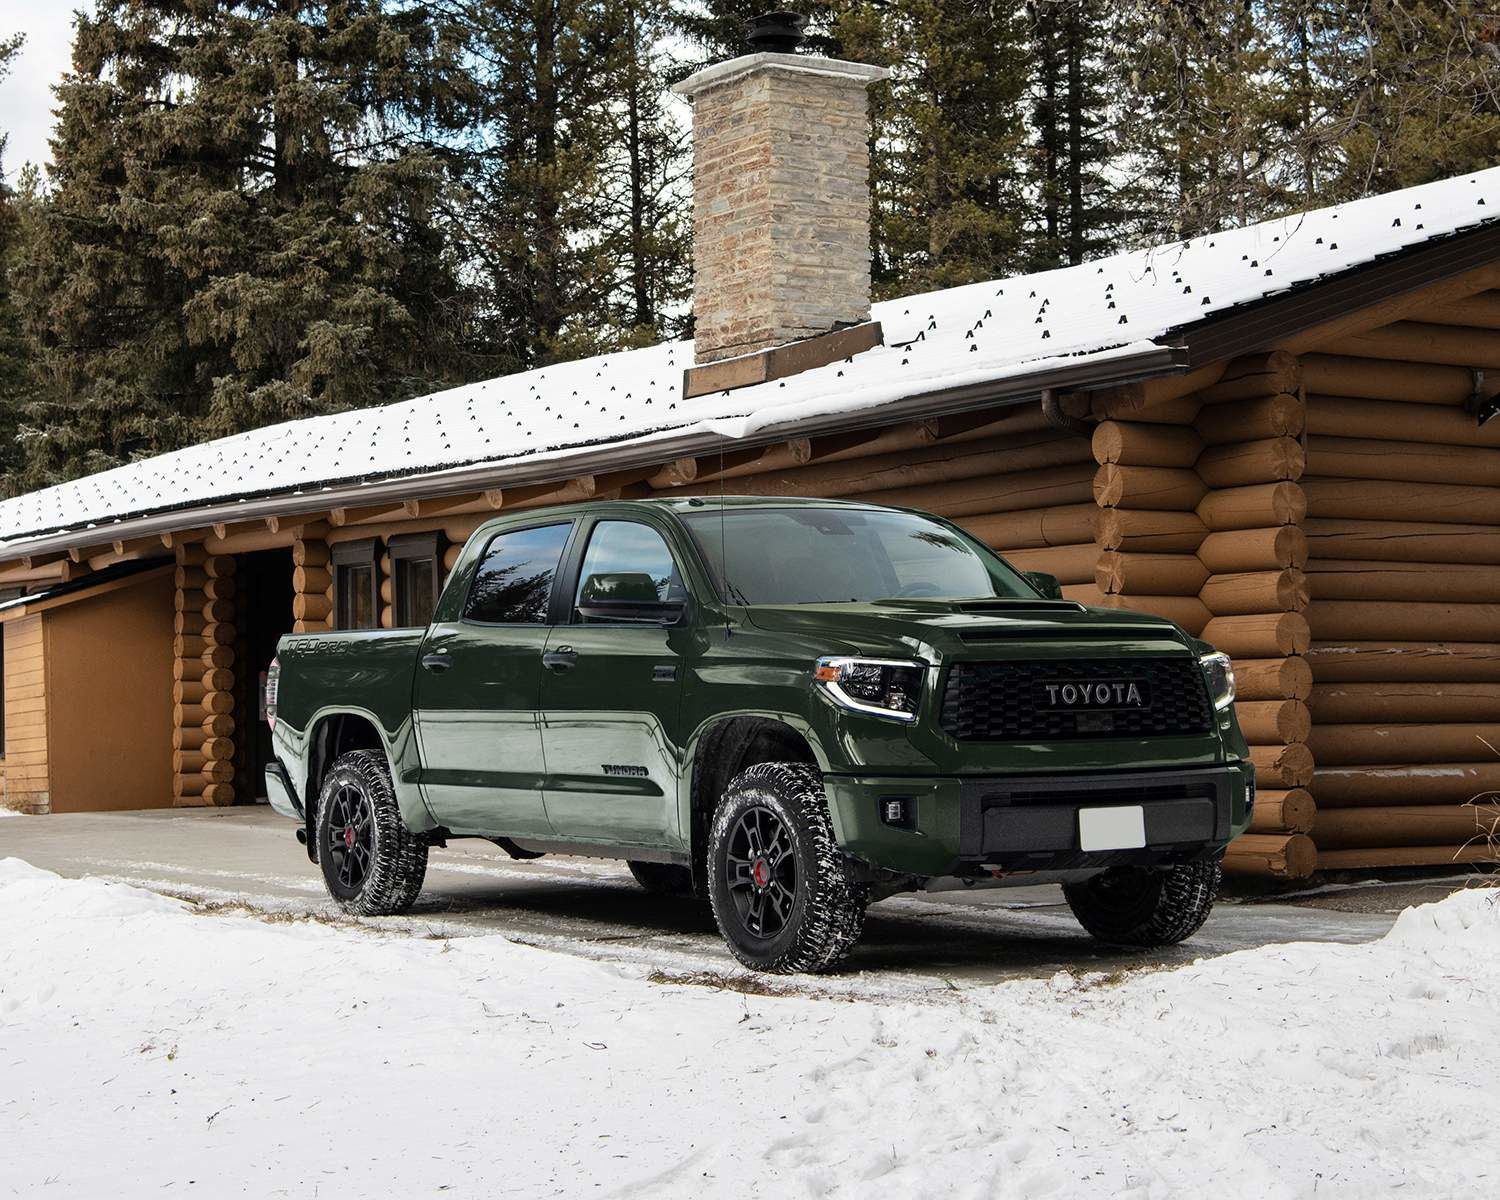 2020 Tundra 4x4 CrewMax TRD Pro shown in Army Green